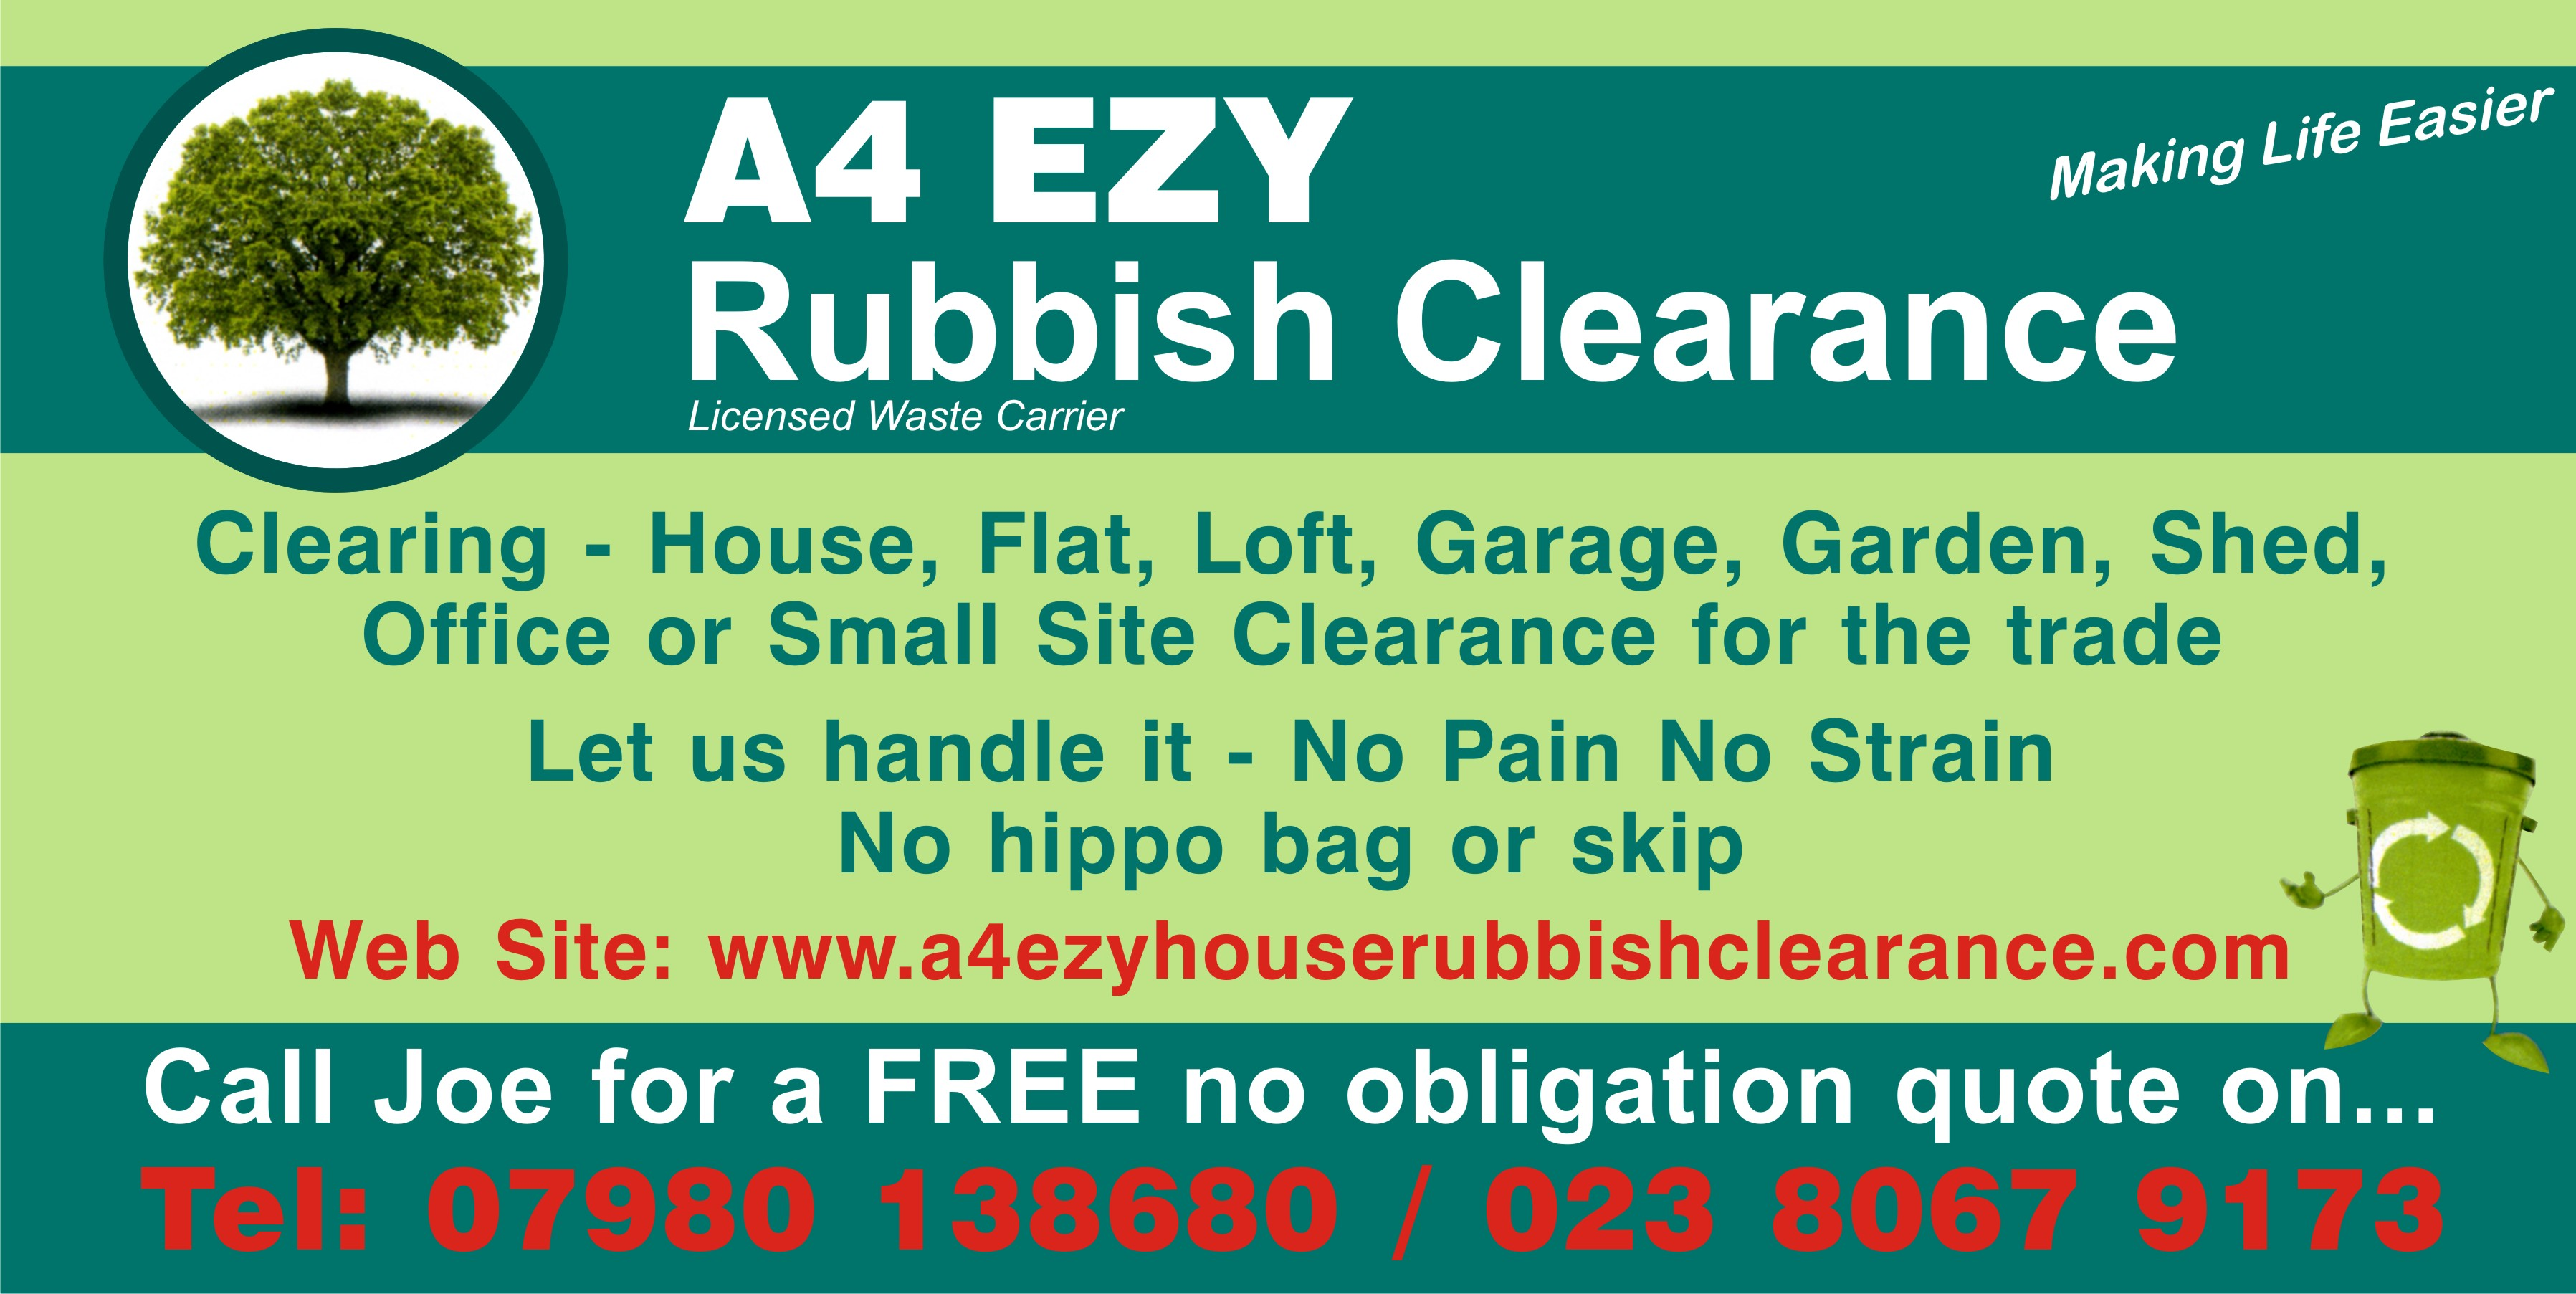 A4 Ezy House Rubbish Clearance